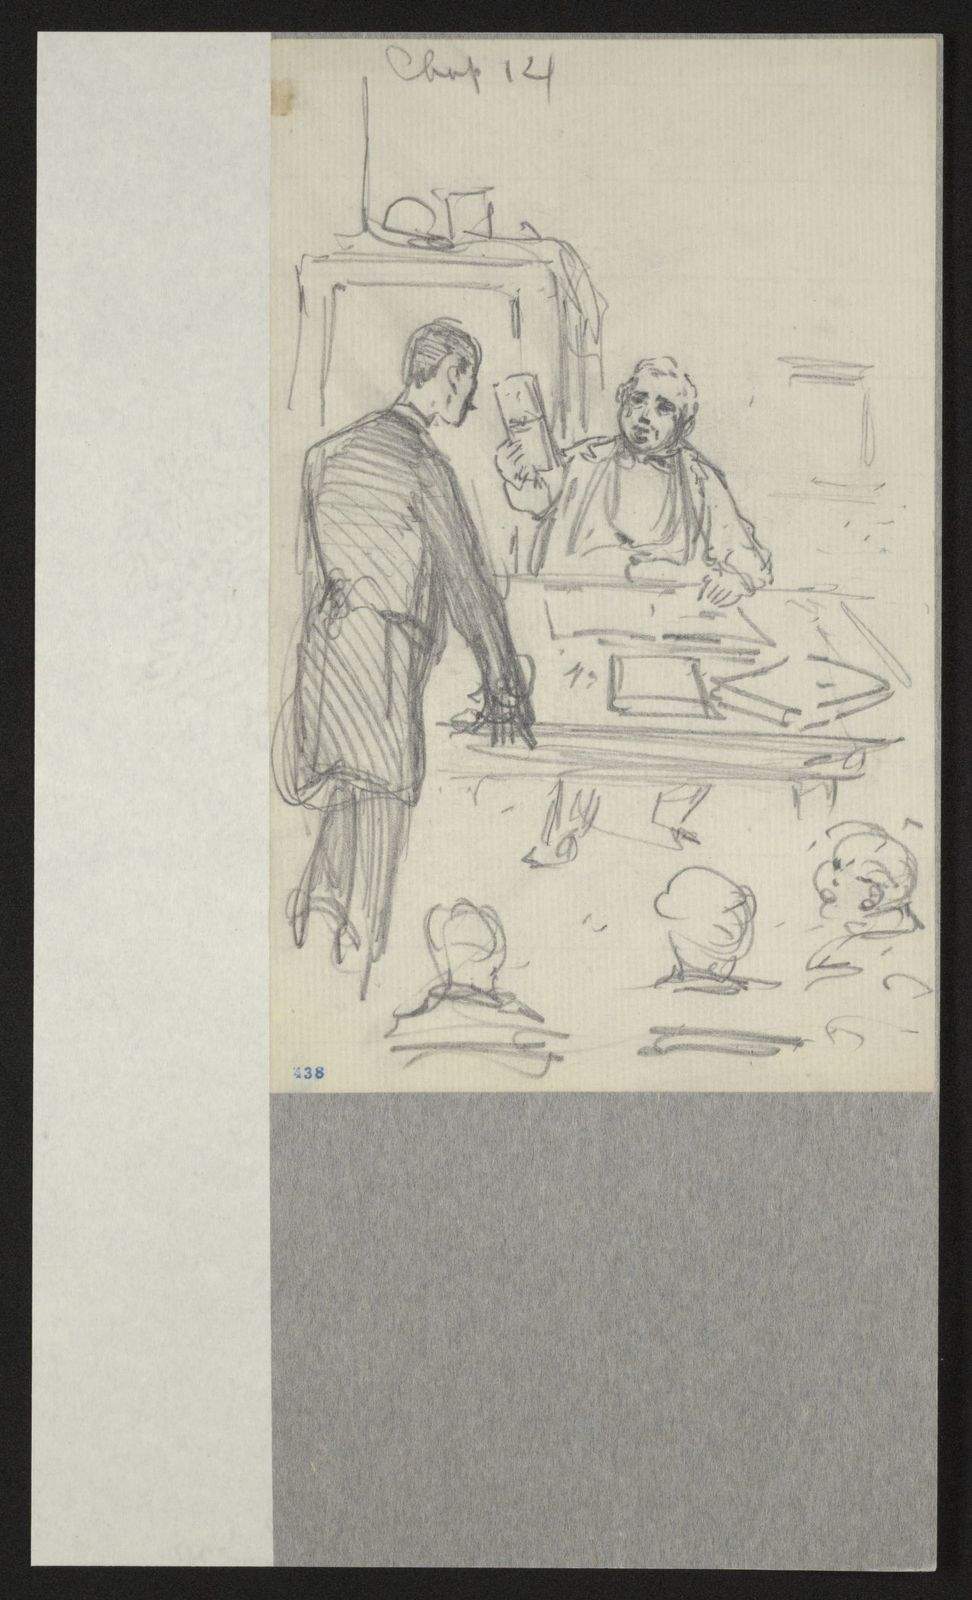 Charles Wellington Reed Papers: Sketchbooks, 1863-1887, undated; Unnumbered, leaves 416-650